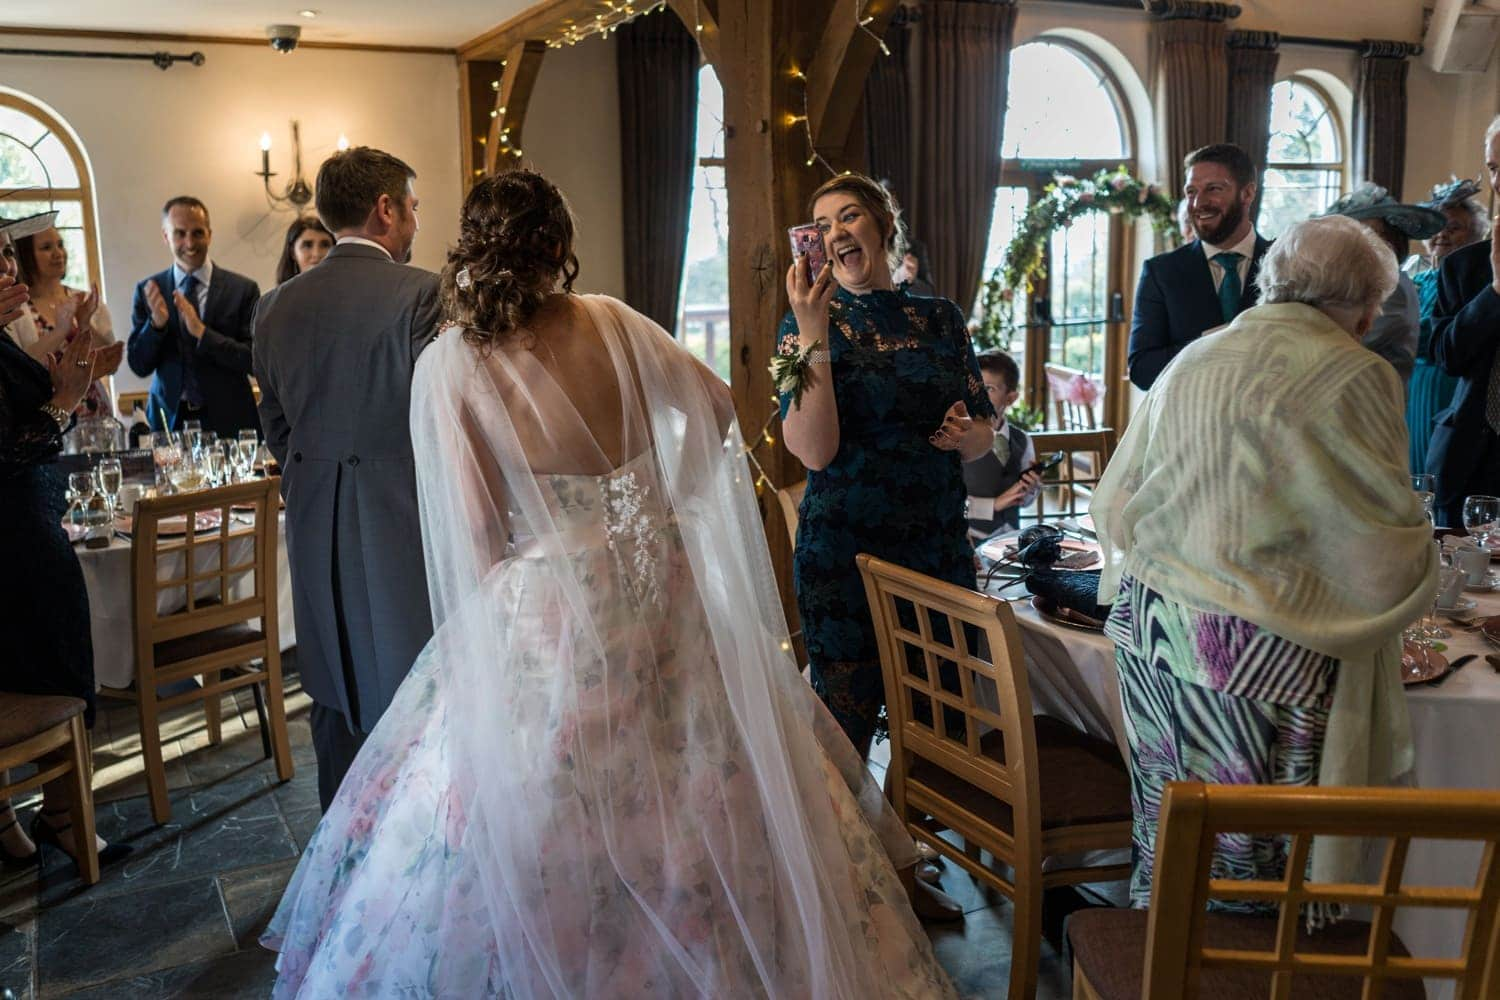 Wedding day speeches at King Arthur Hotel in South Wales